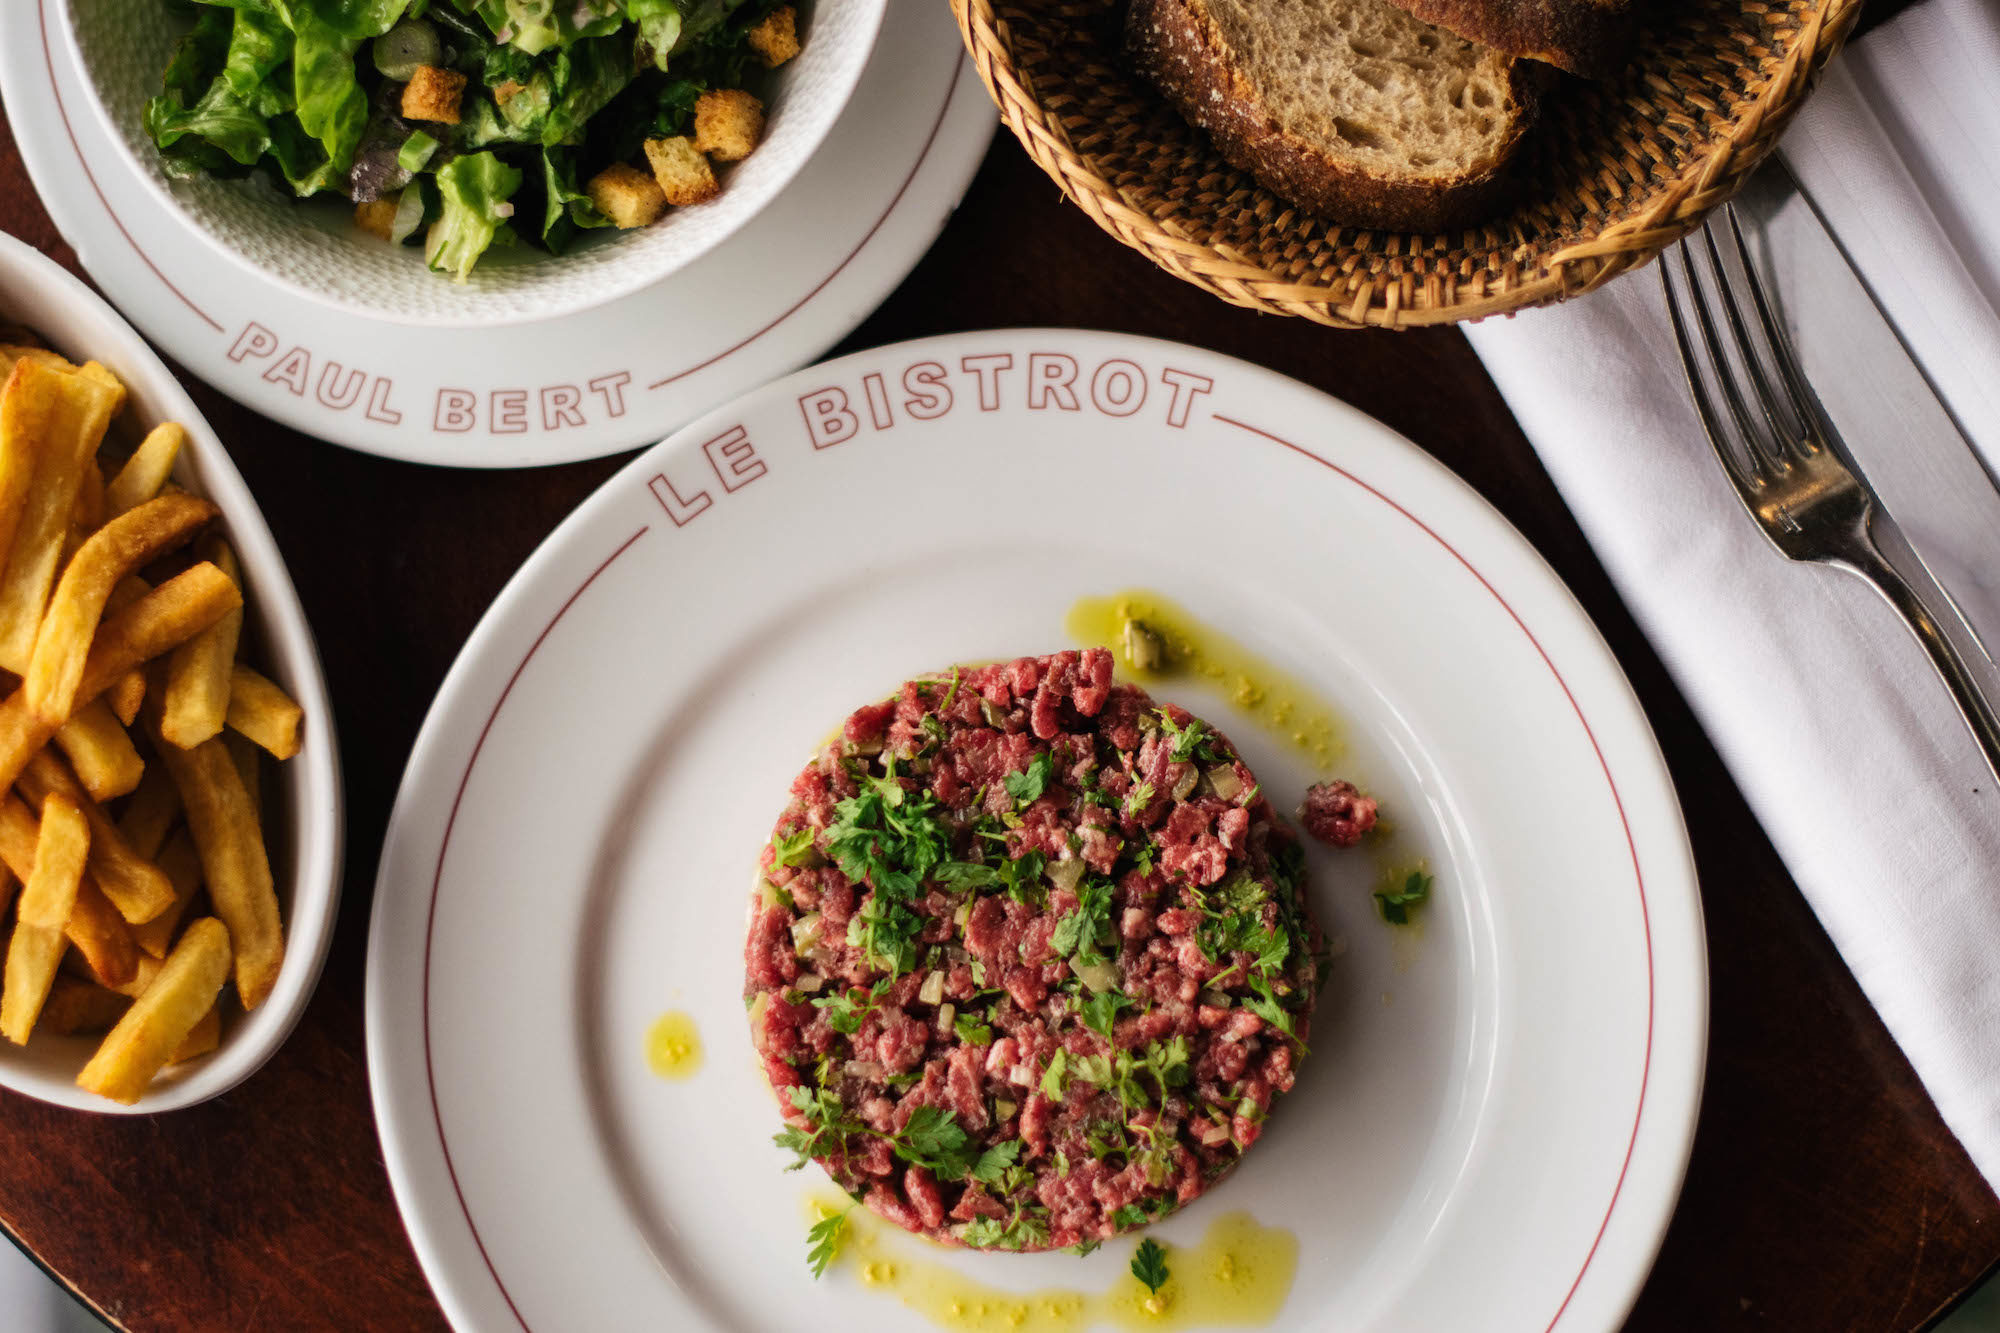 Signature steak tartare at the Bistrot Paul Bert in Paris with sides of bread, salad and fries.